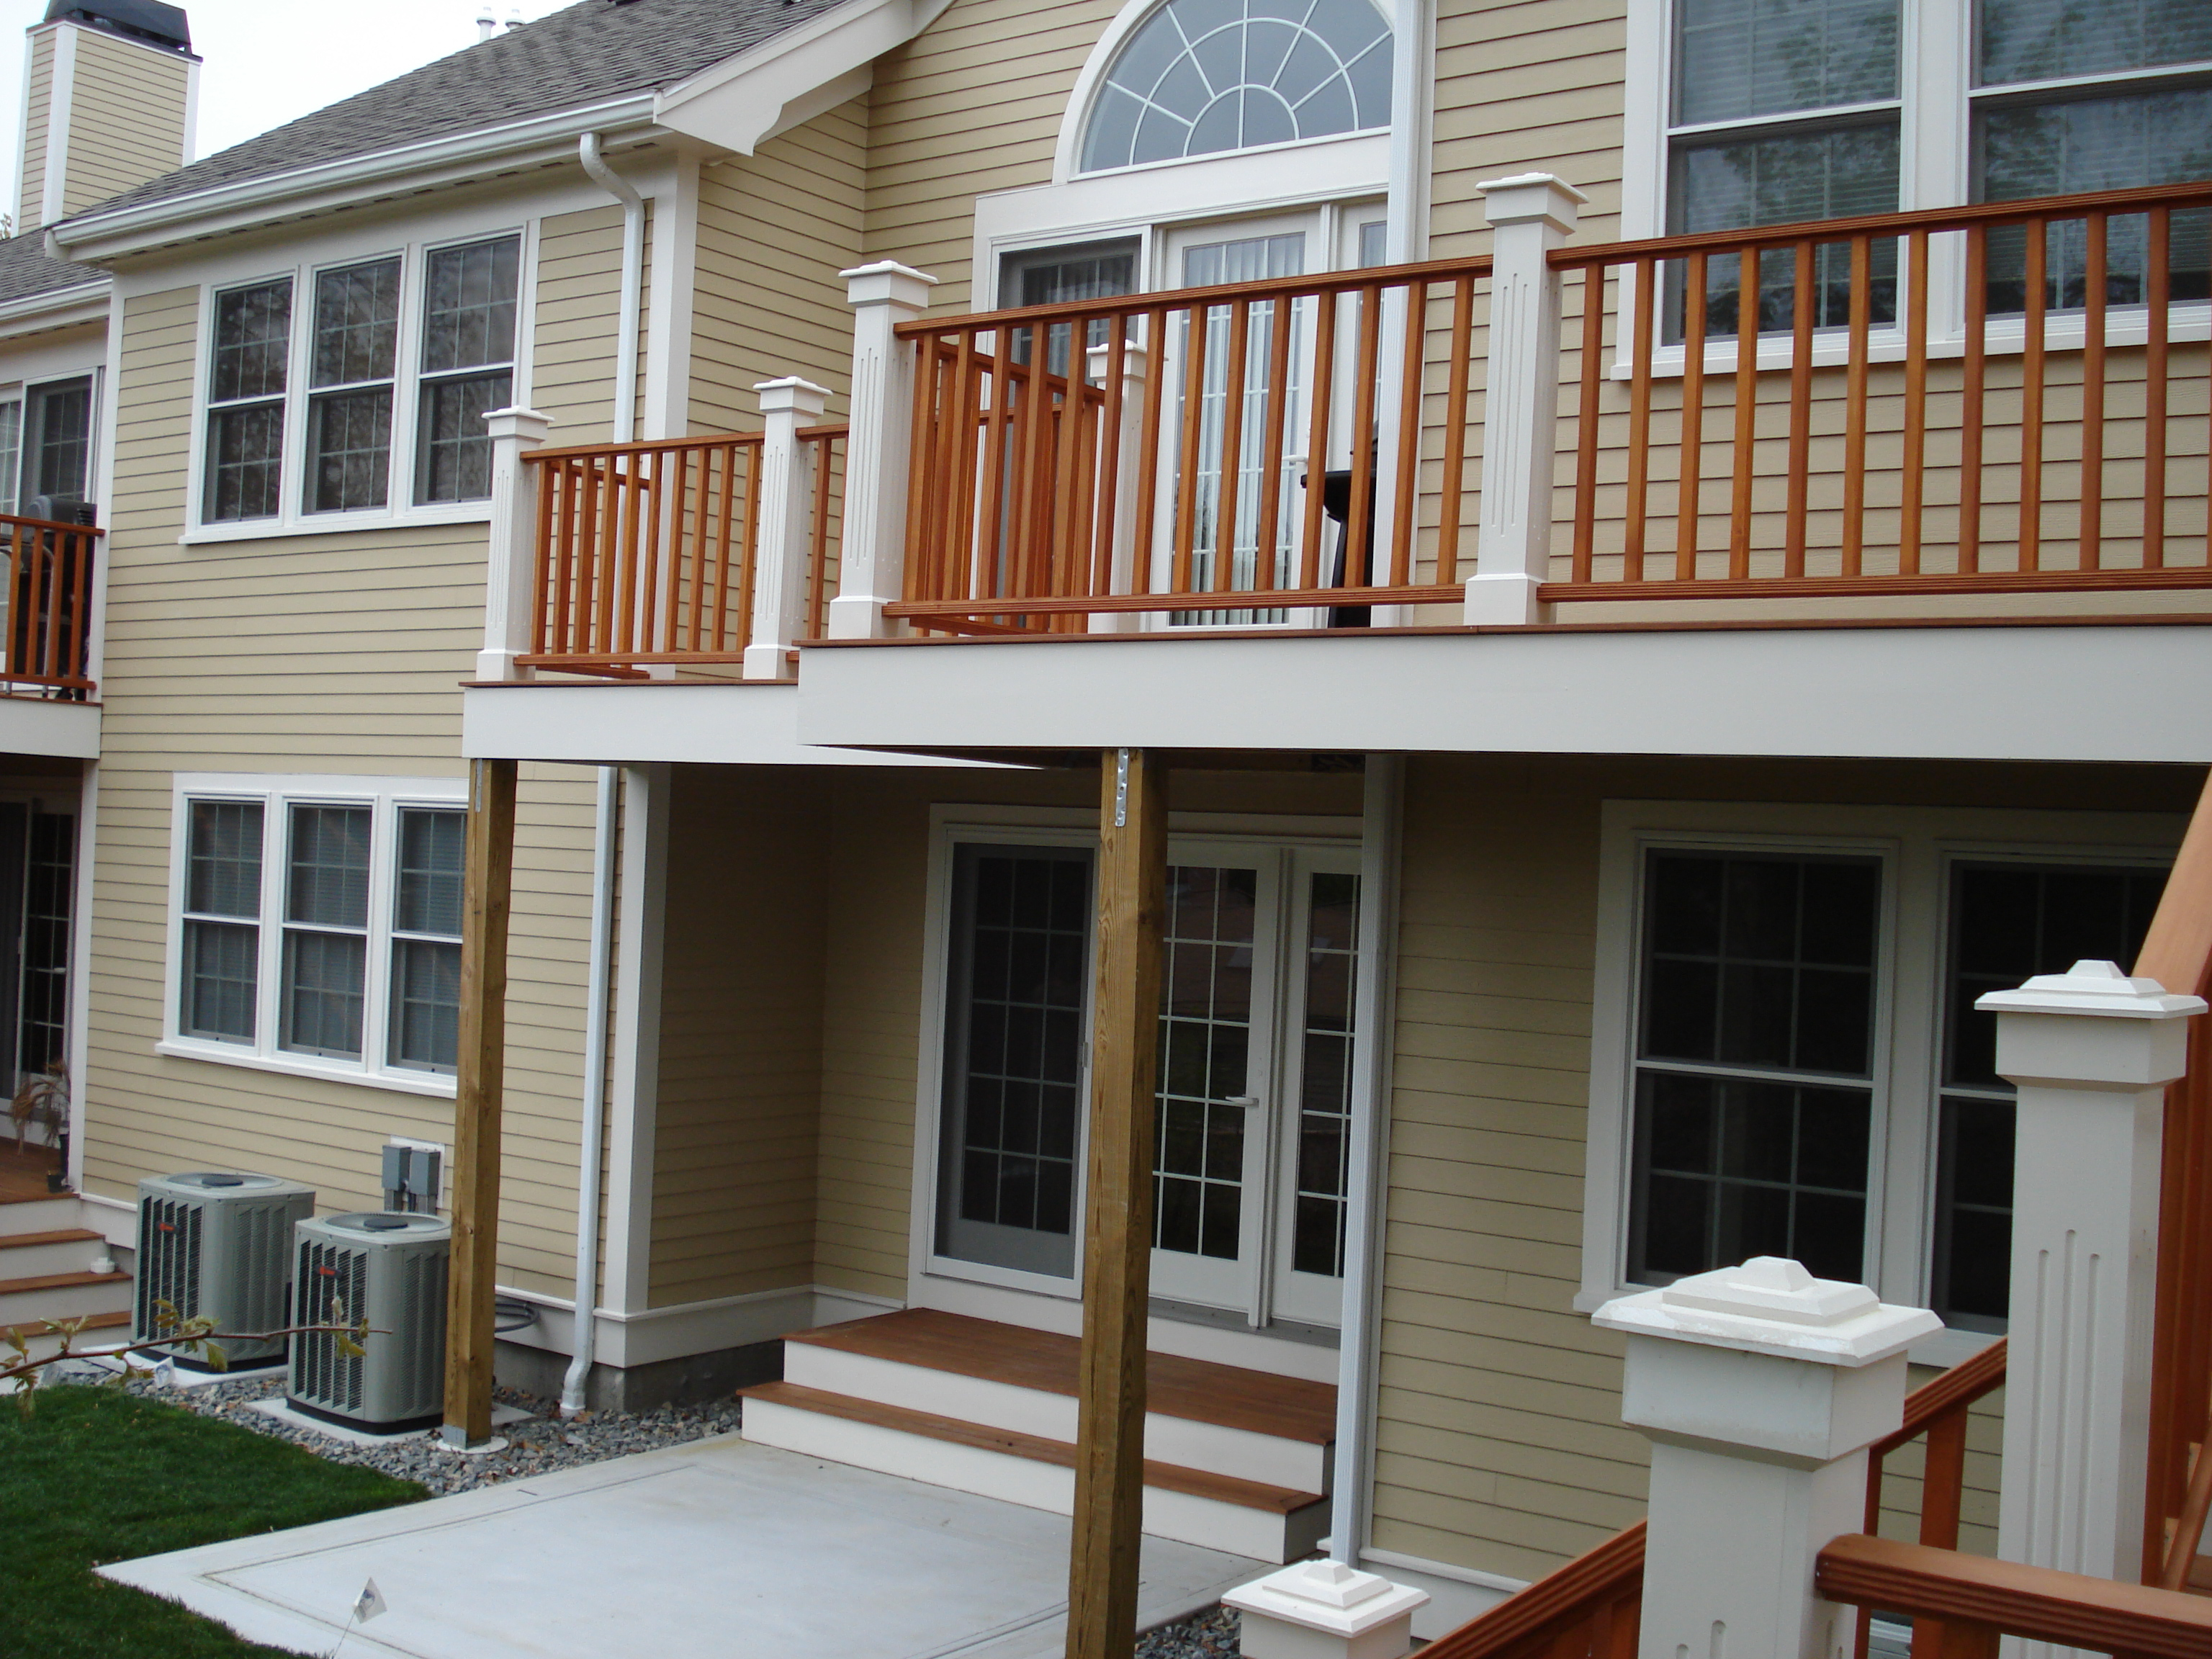 Types of wood siding for houses great exterior design for Types of house siding materials